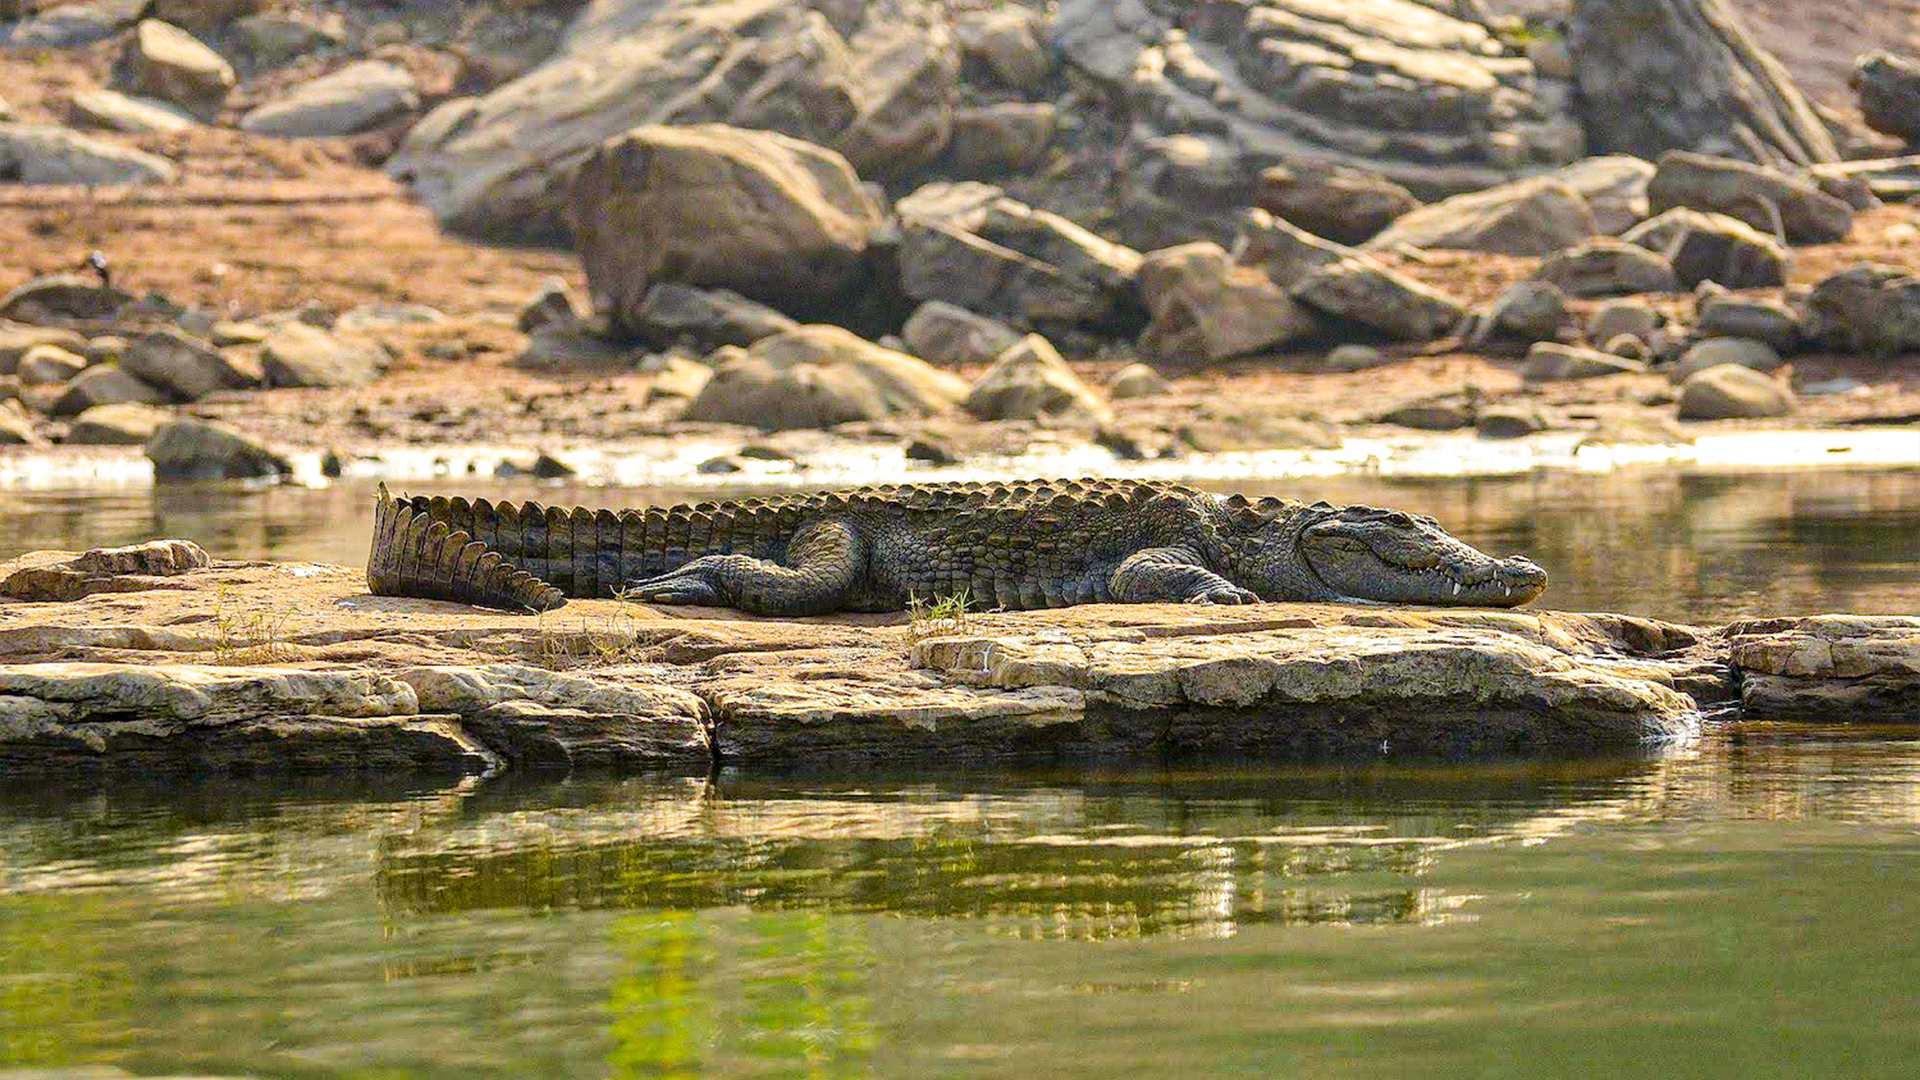 Strategy and Stealth: The Everyday Life of a Marsh Crocodile